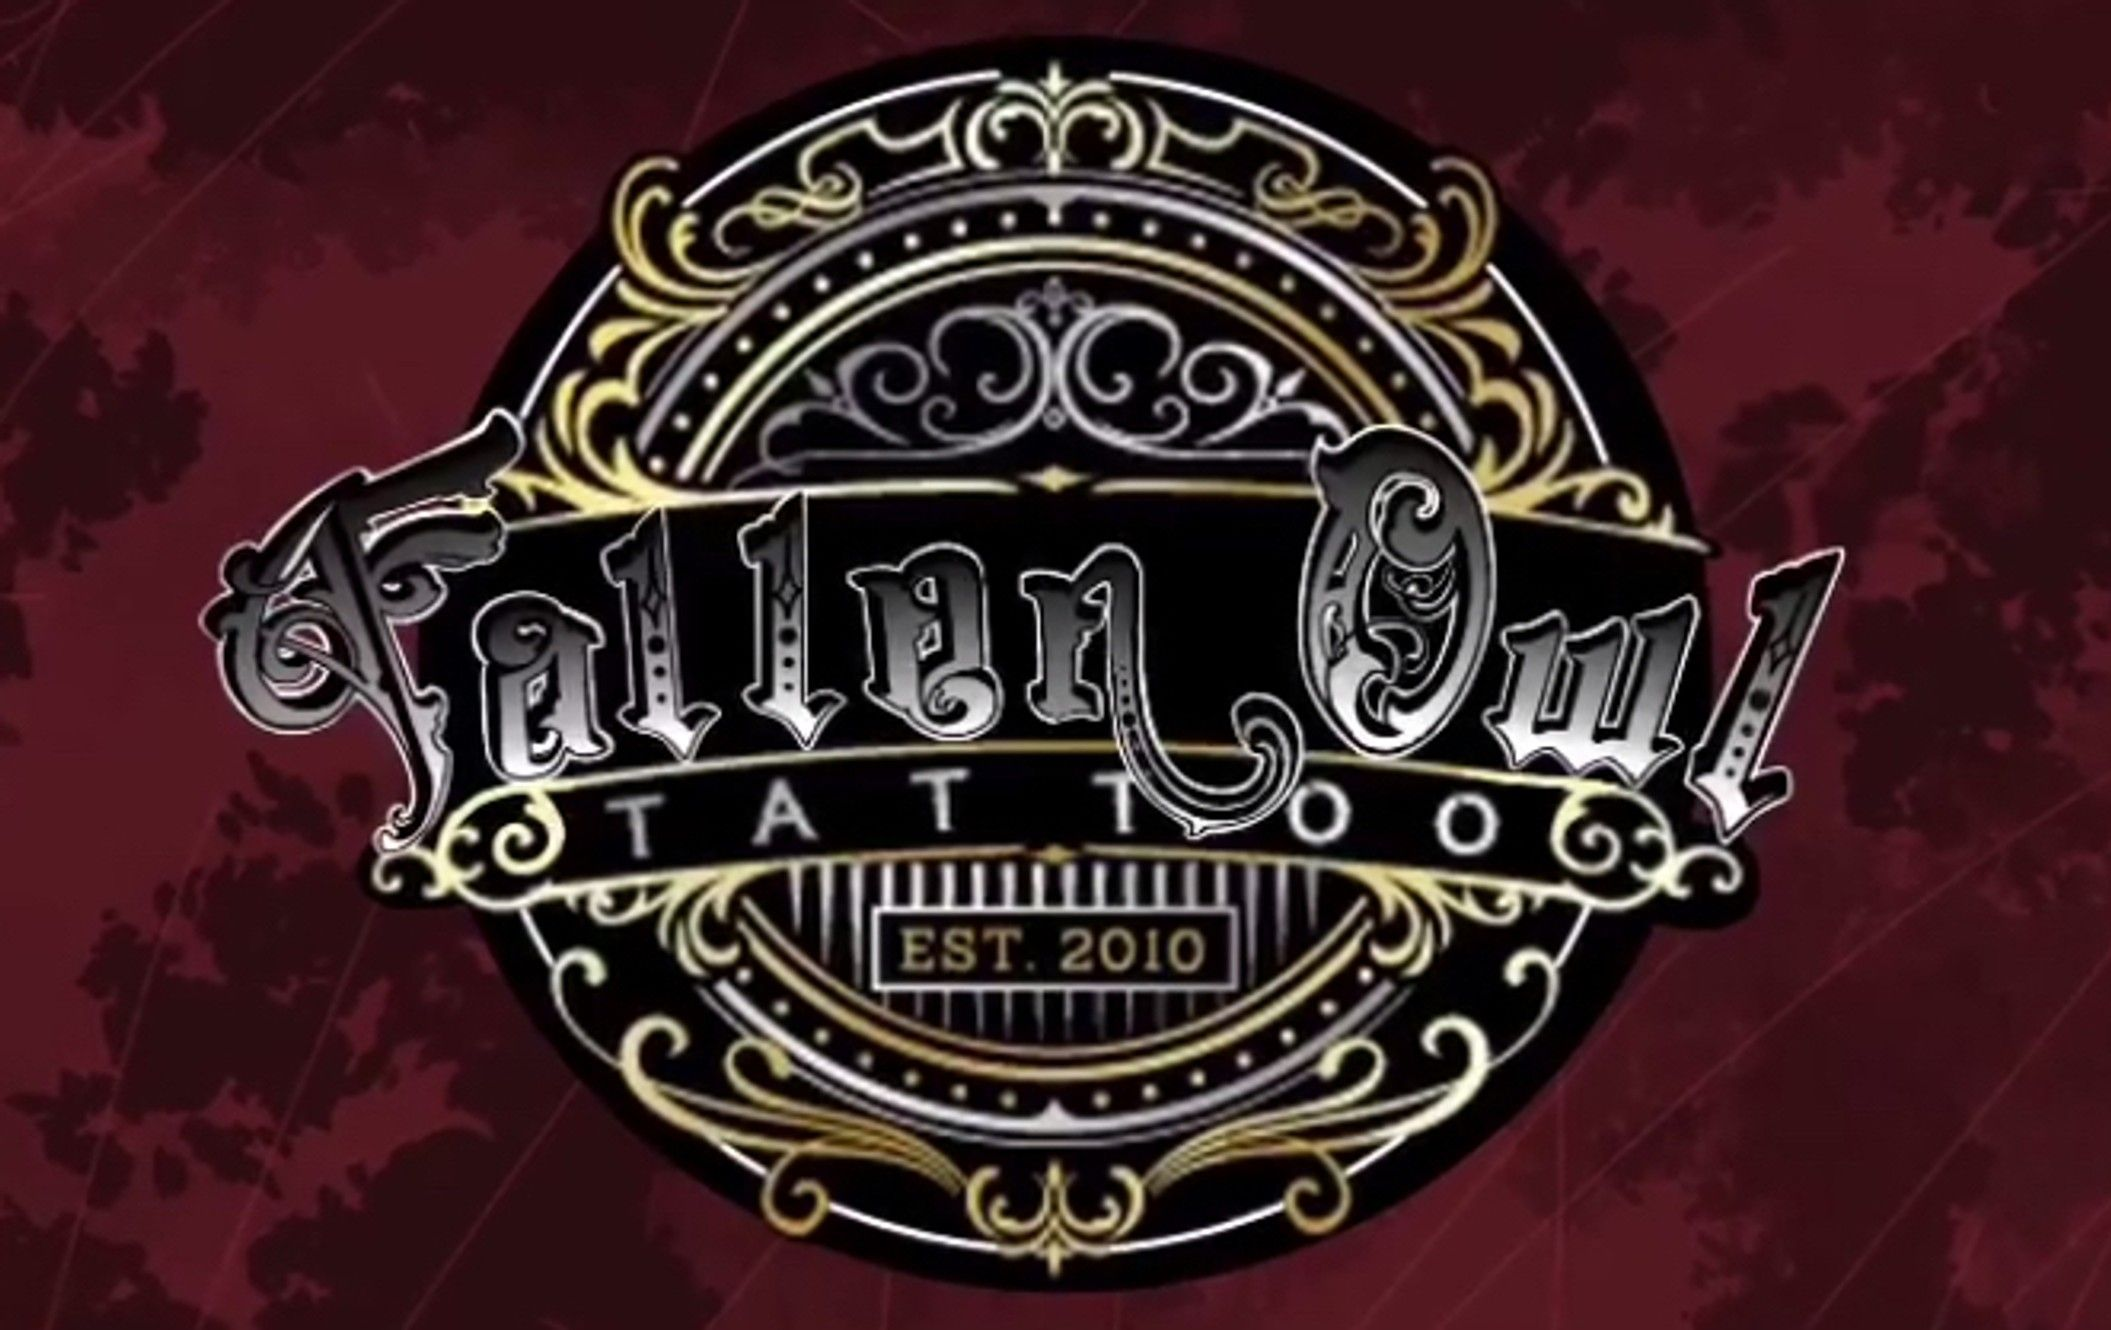 Welcome To Fallen Owl Tattoo Studio Lakewood Colorado S Premier Custom Tattoo Shop In 2020 Owl Tattoo Custom Tattoo Tattoo Shop